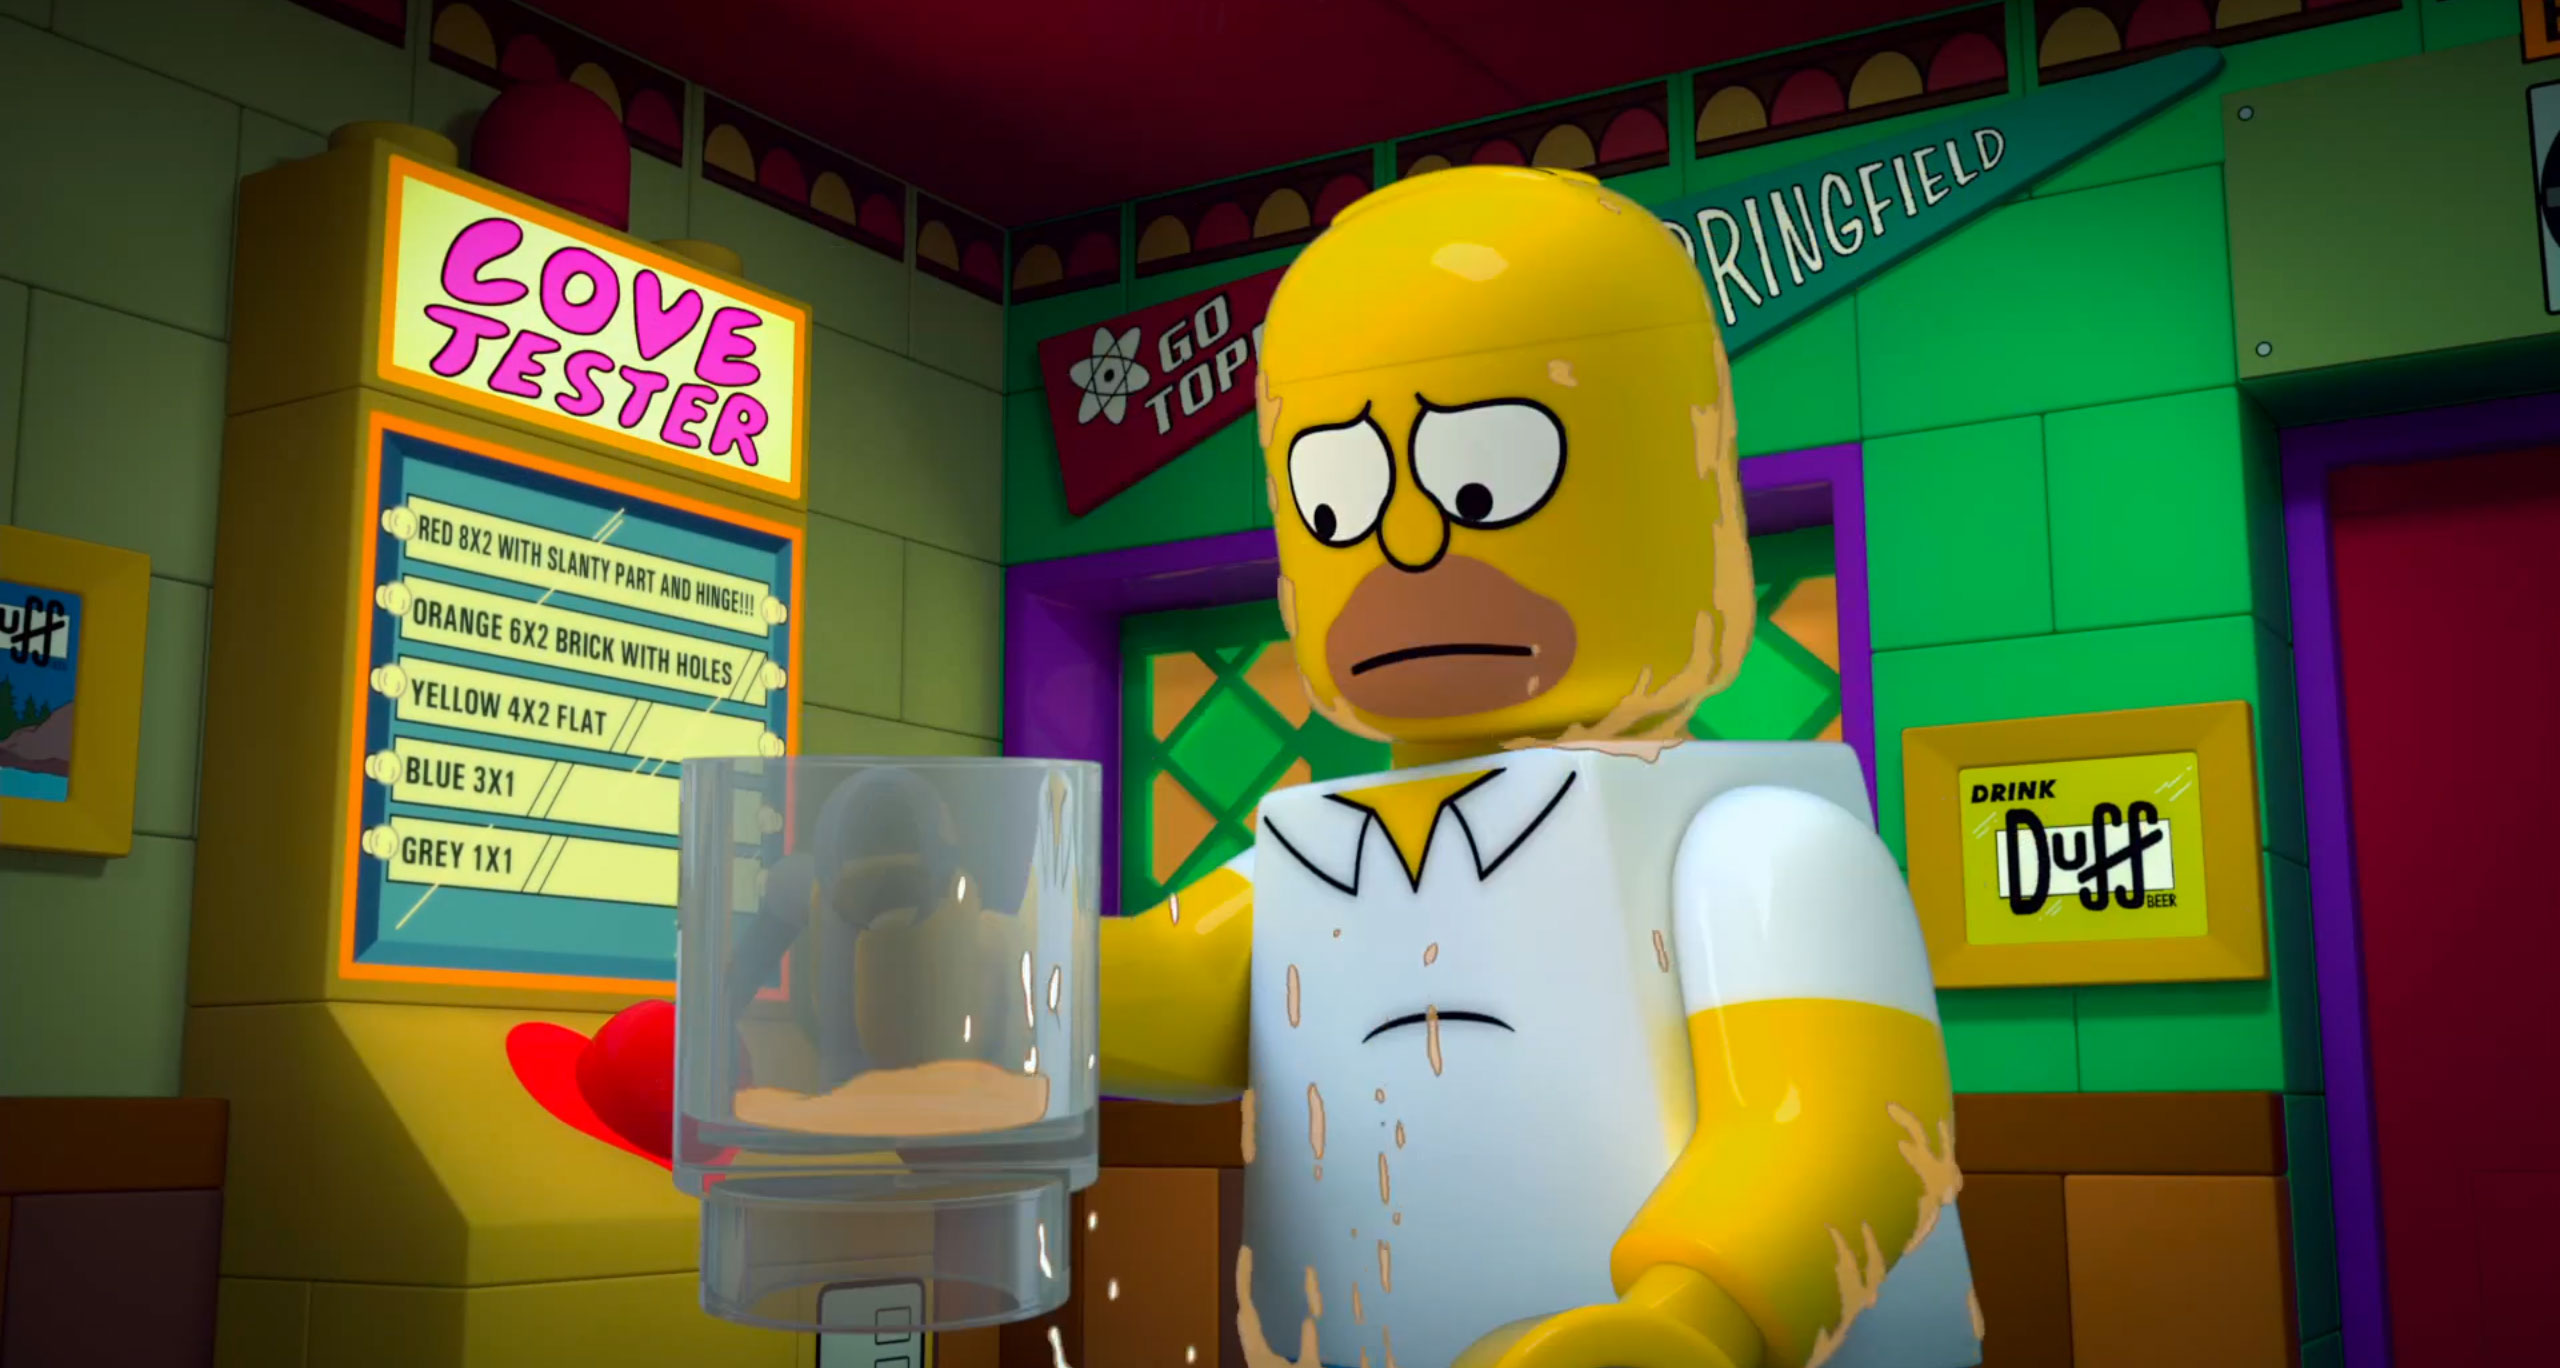 The Simpsons LEGO Episode Looks Weirder than Expected